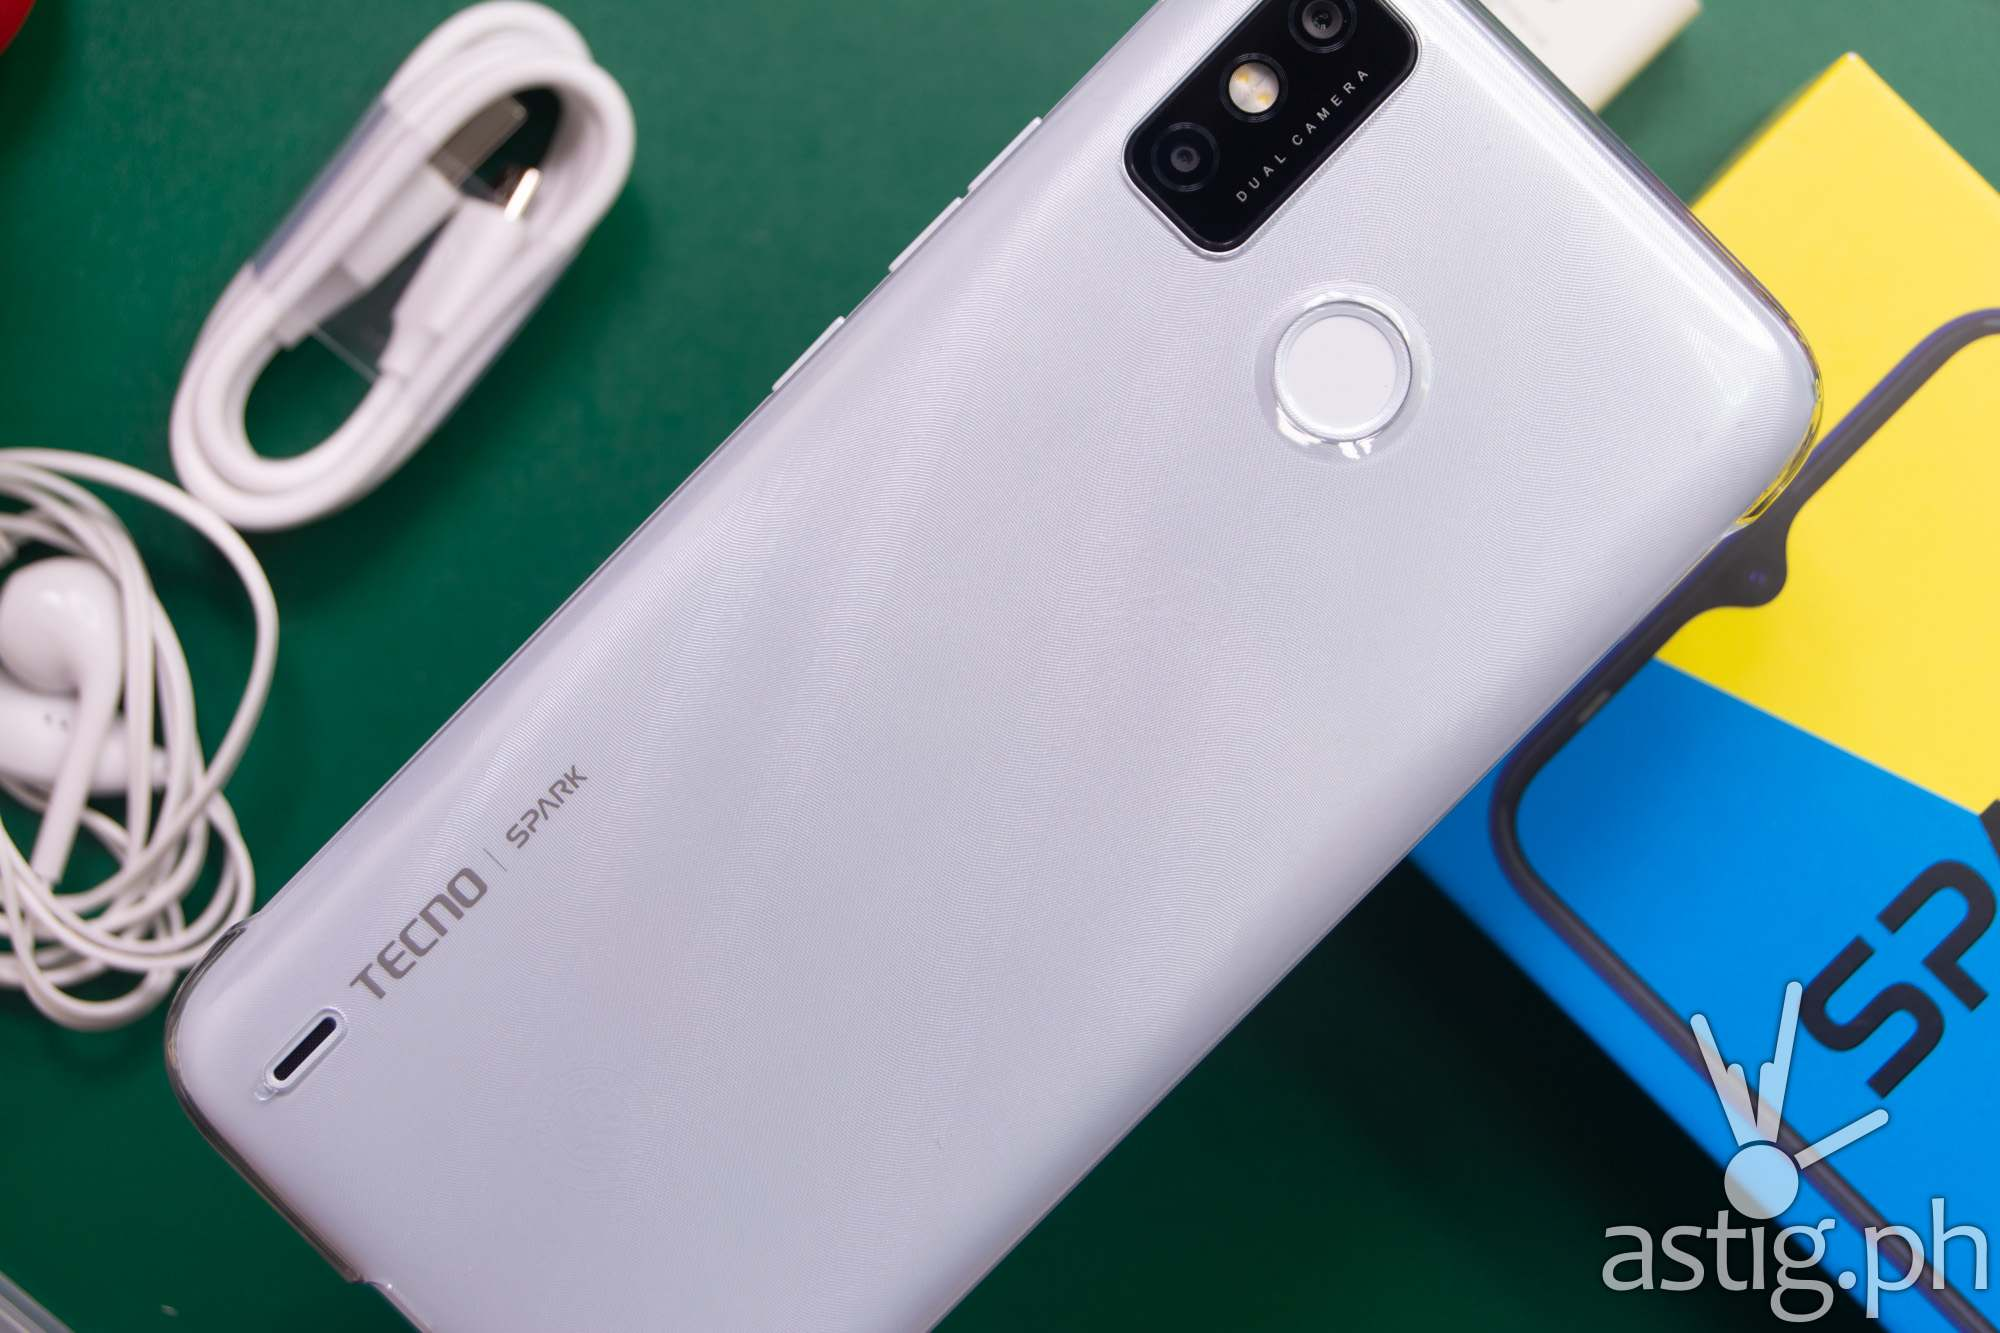 Back with hard case - TECNO Spark 6 Go (Philippines)